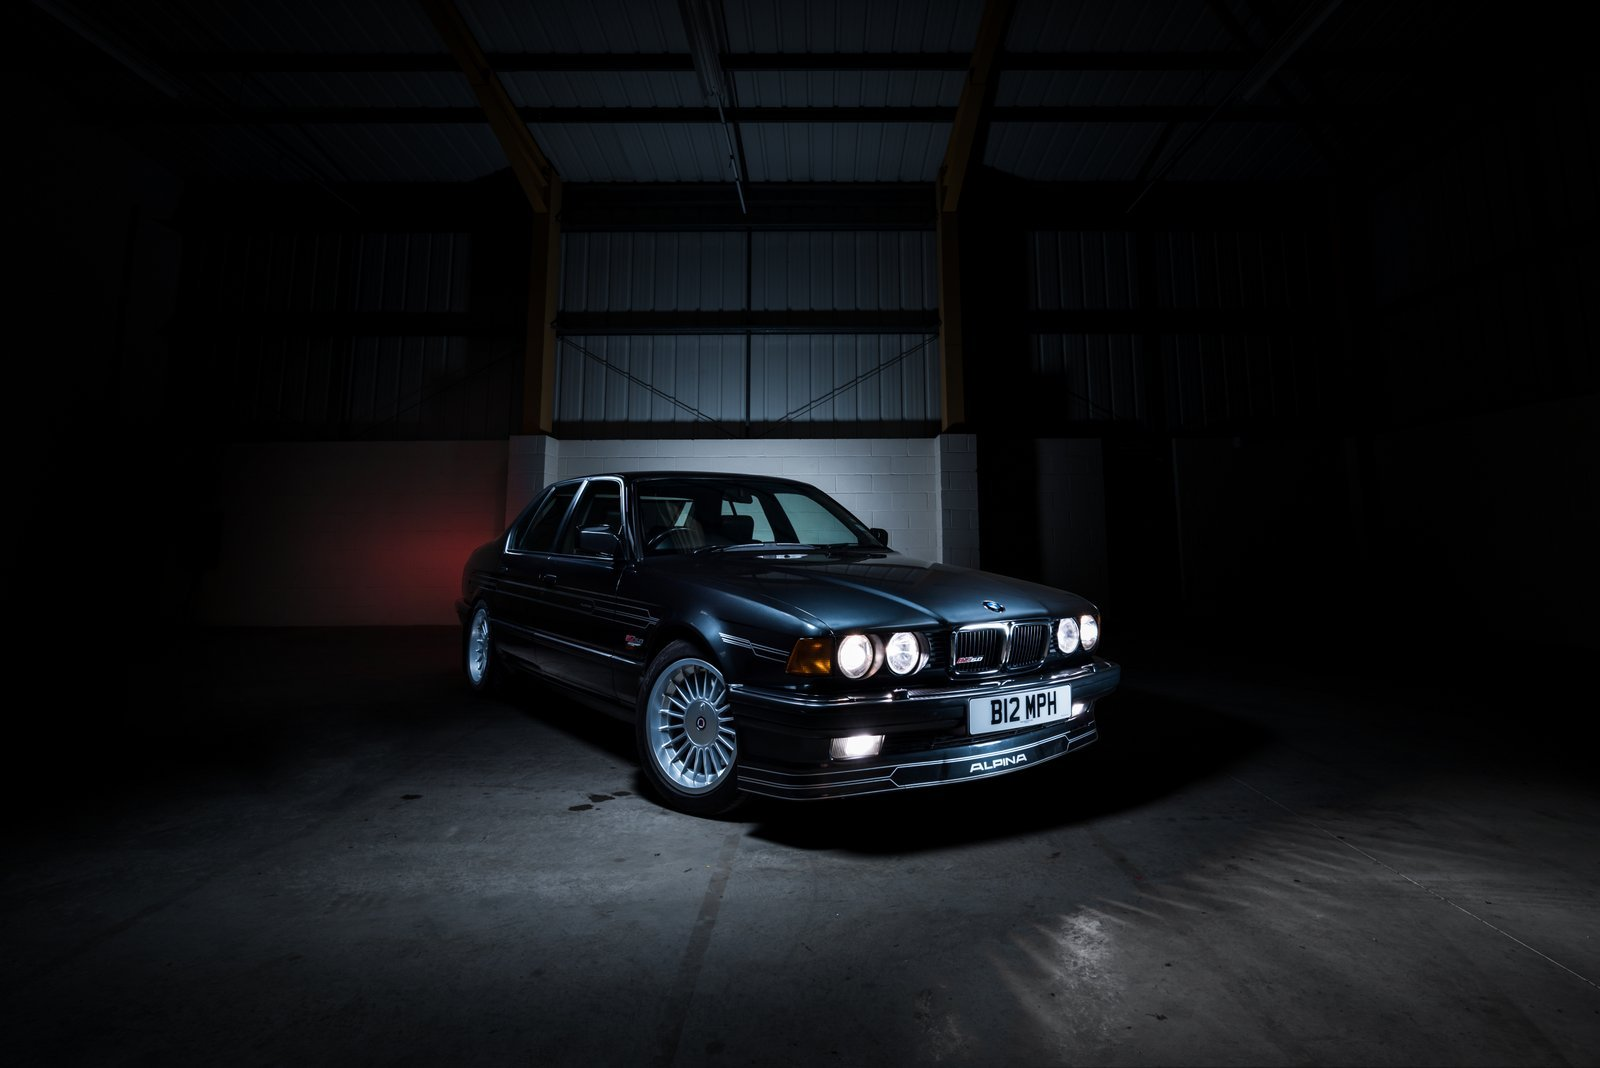 1990 BMW Alpina B12 5.0 e32 RHD 1 of 5 Produced For Sale (picture 5 of 6)